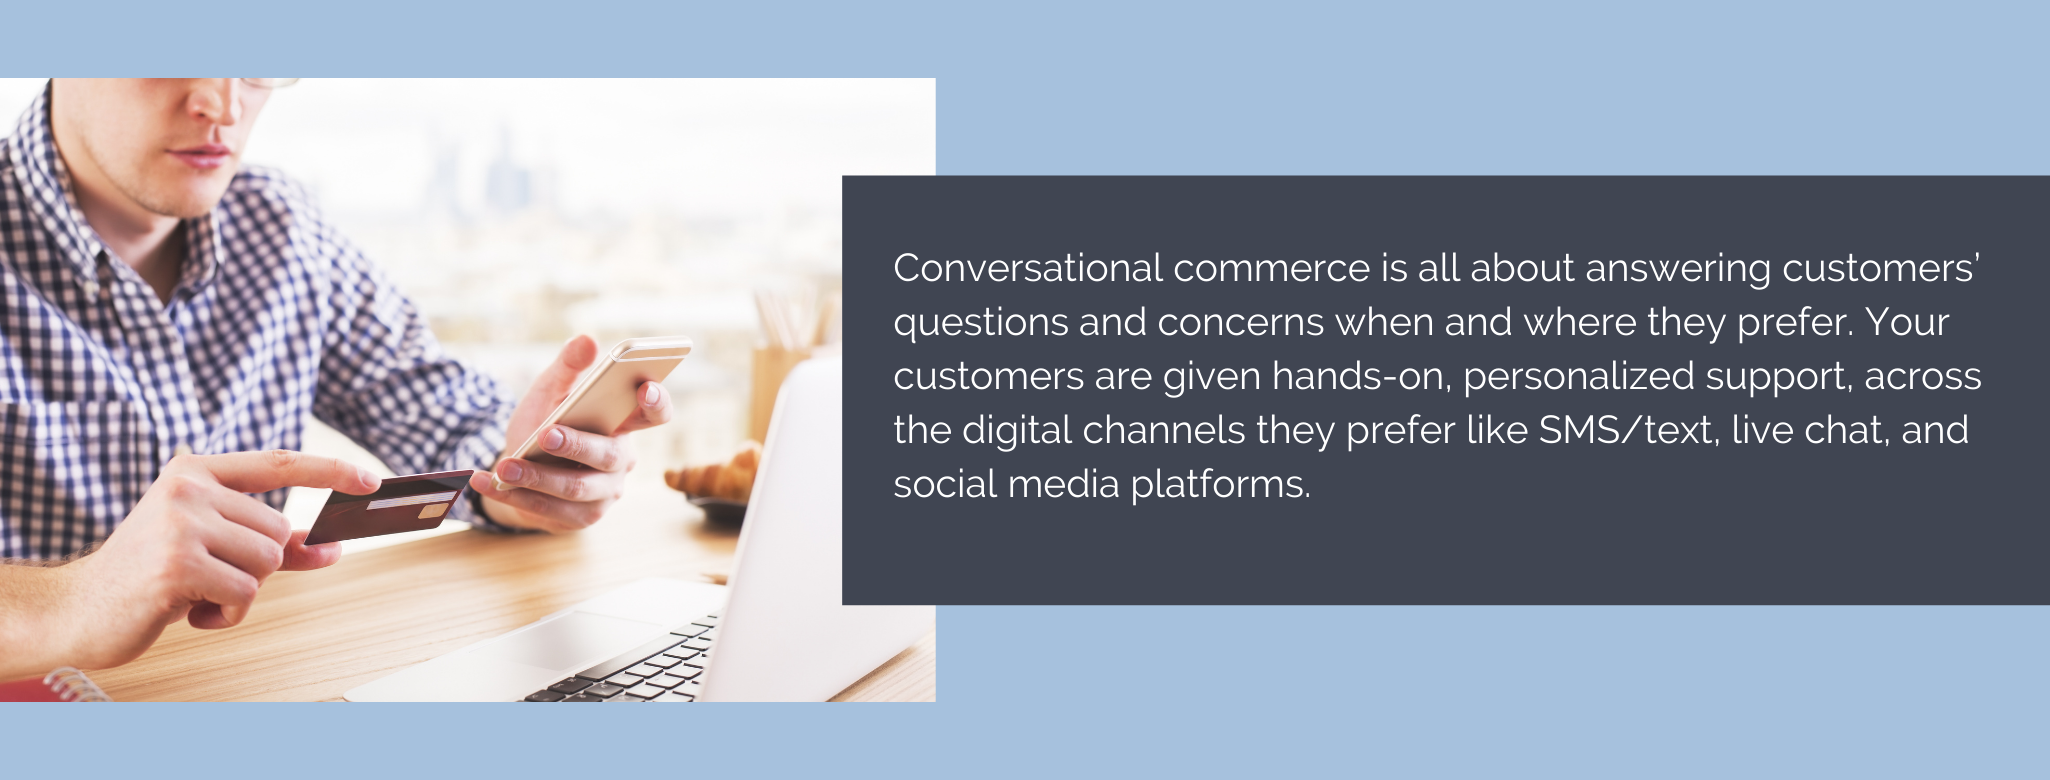 Conversational commerce is all about answering customers' questions and concerns